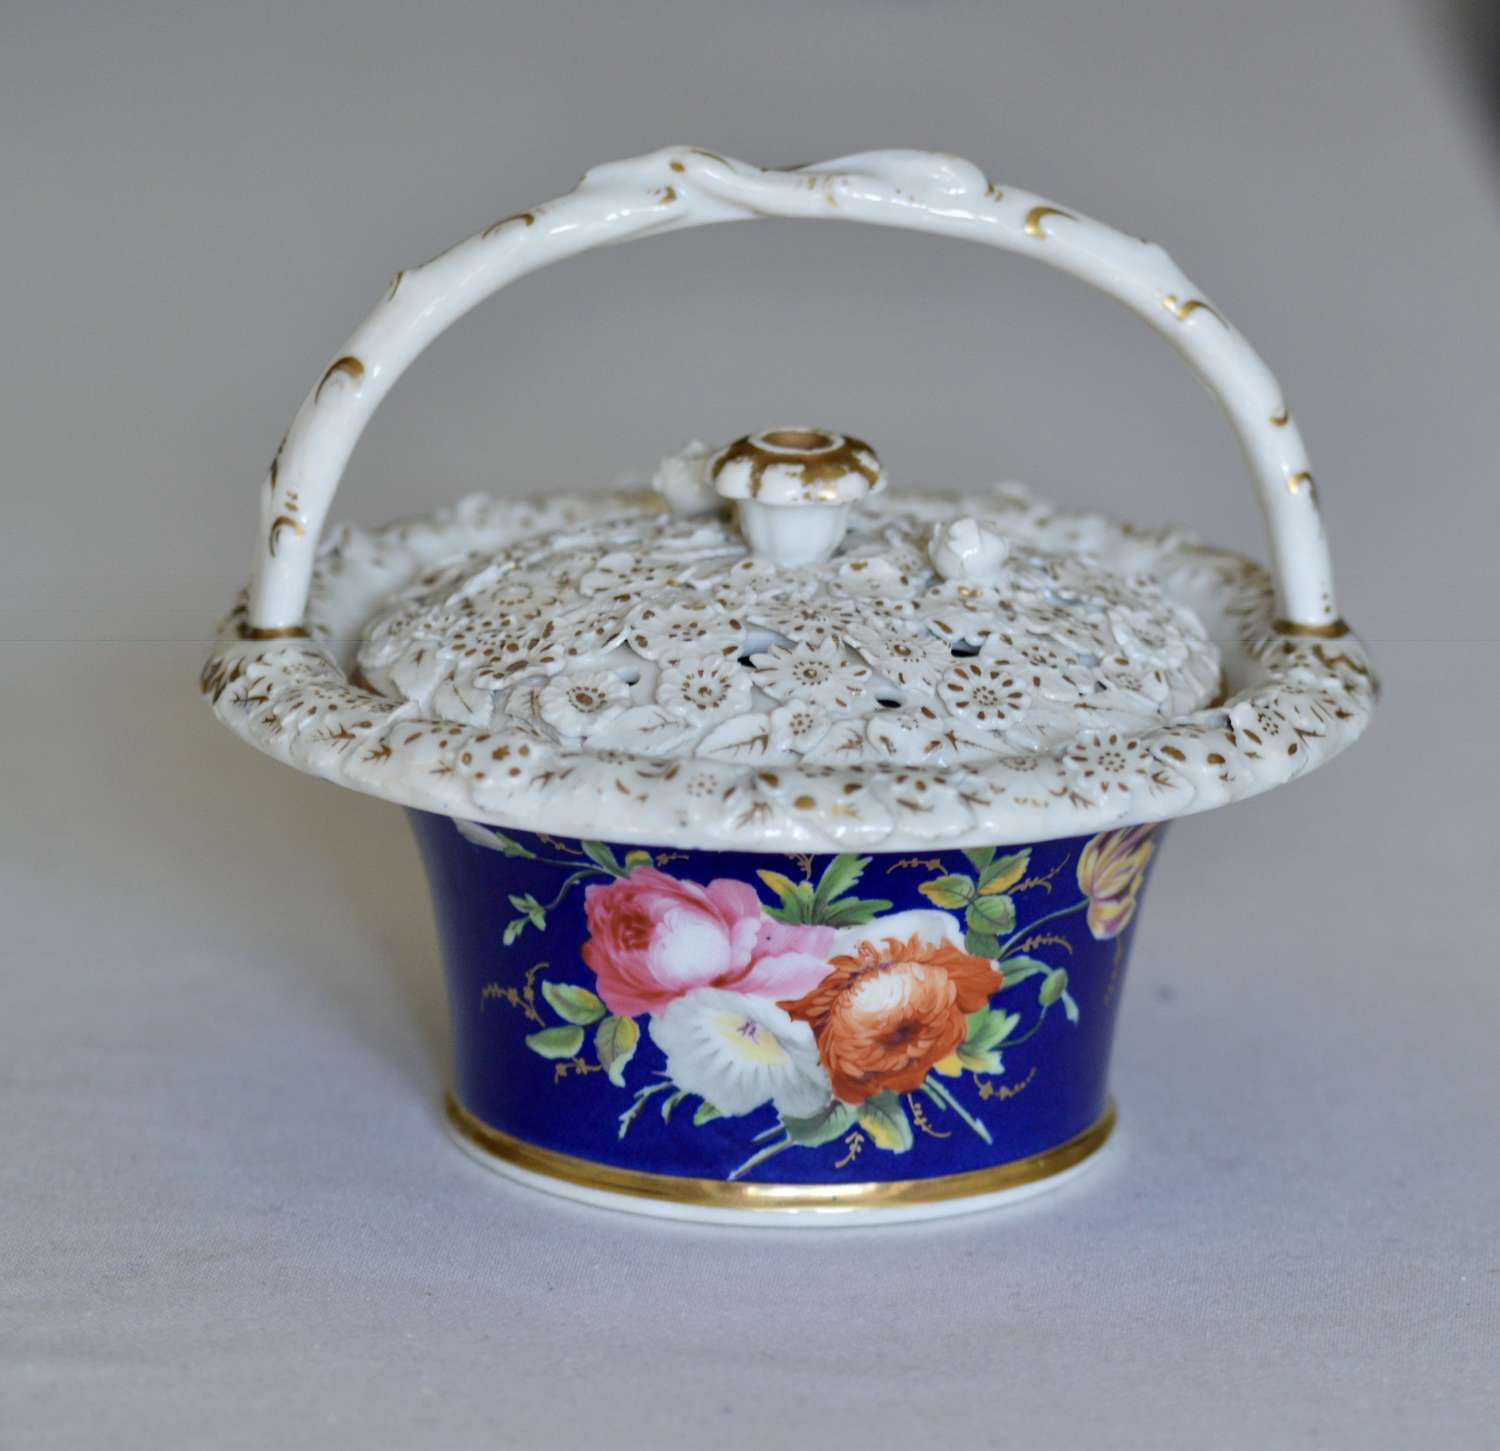 Early 19th Century Chamberlain's Pot Pourri Floral Basket and Cover